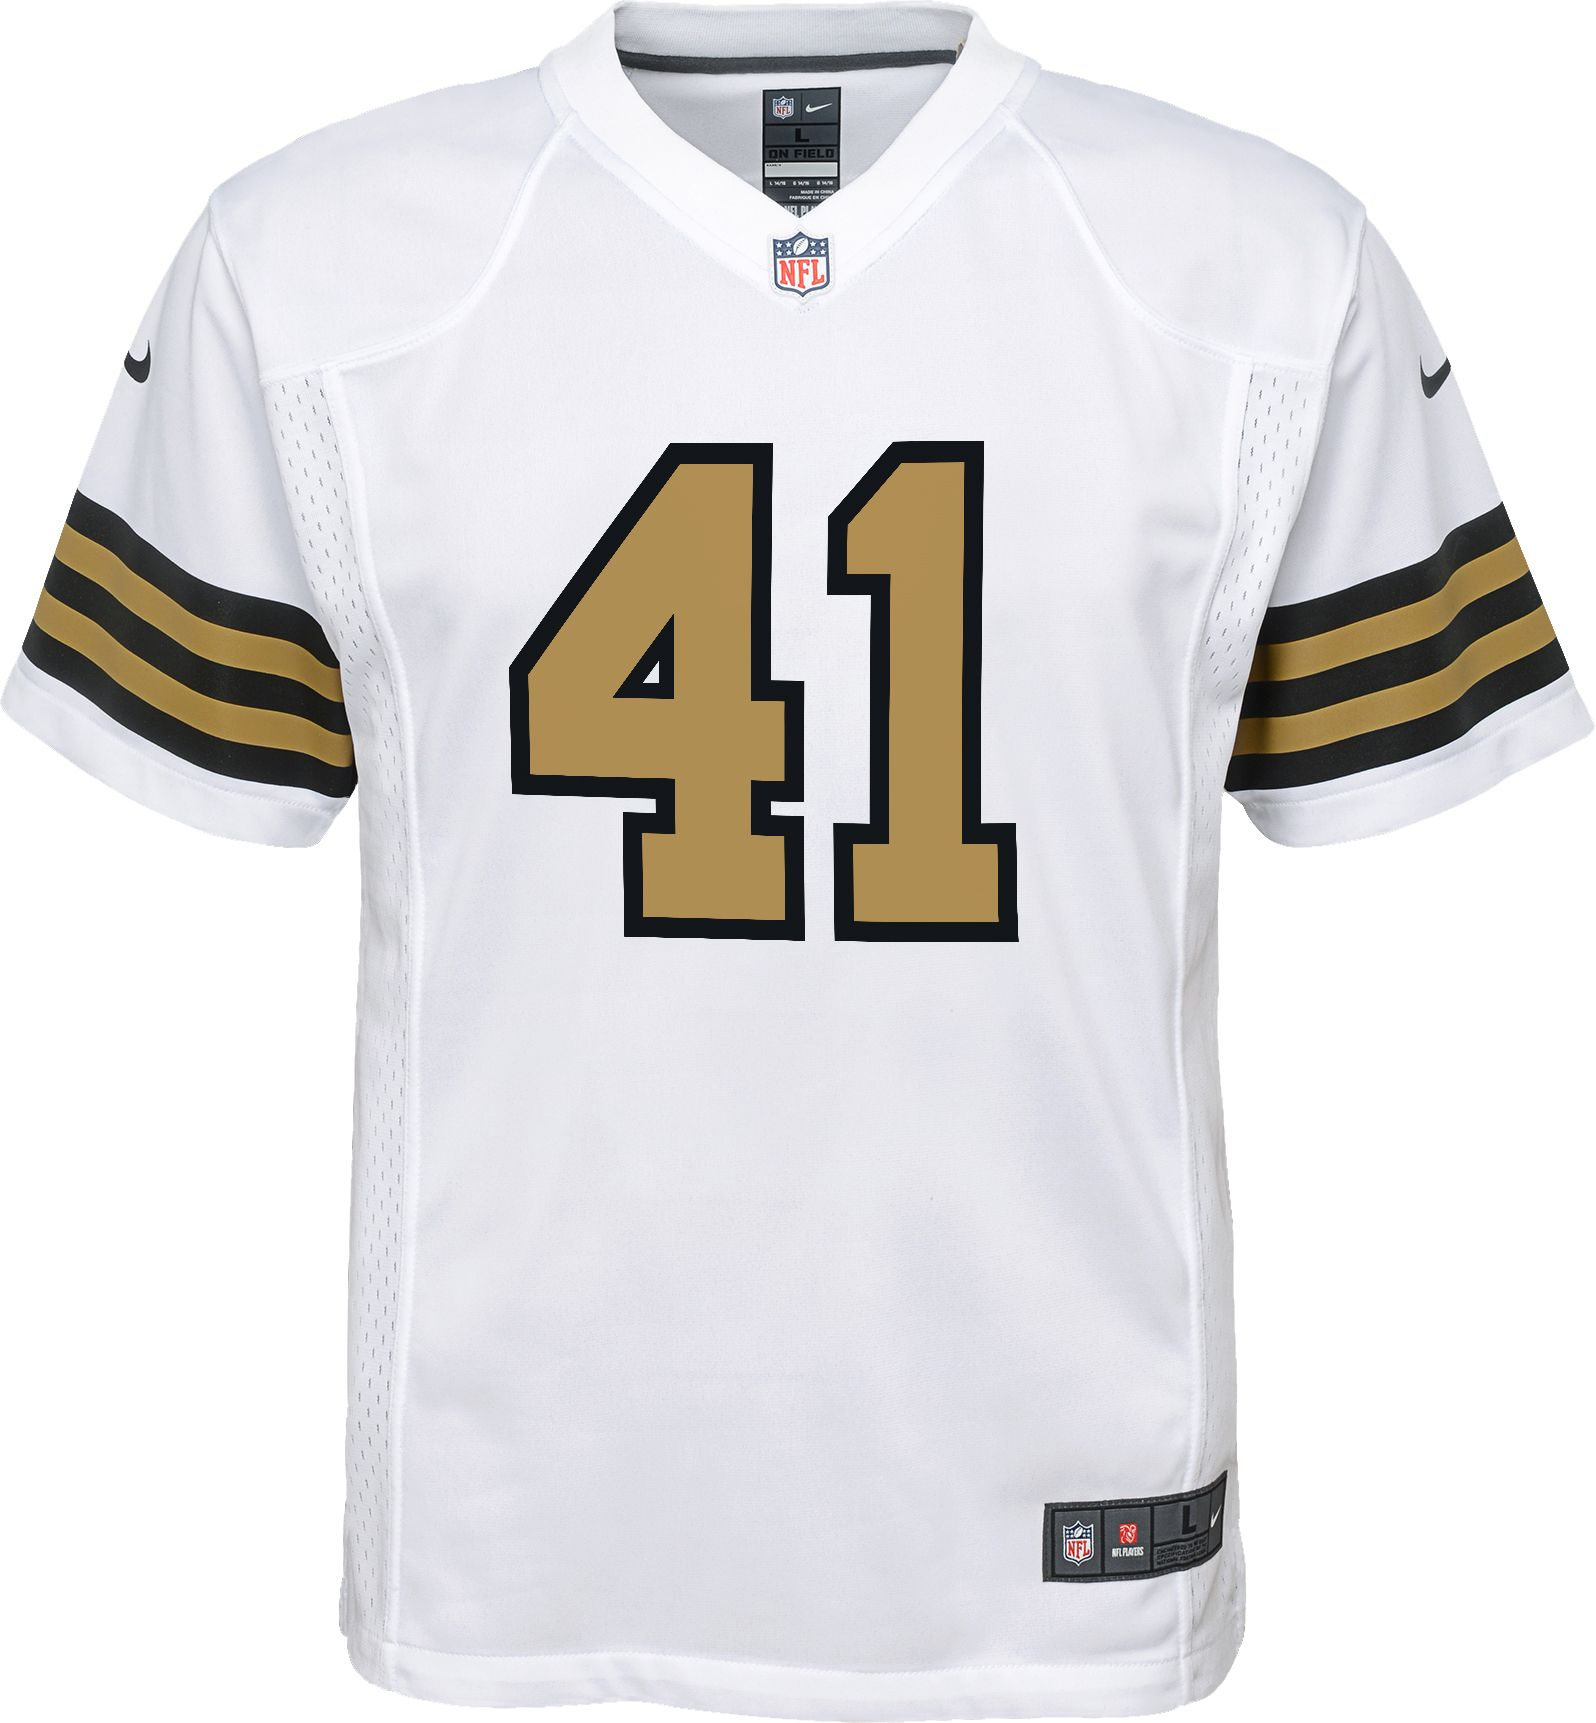 saints color rush shirt